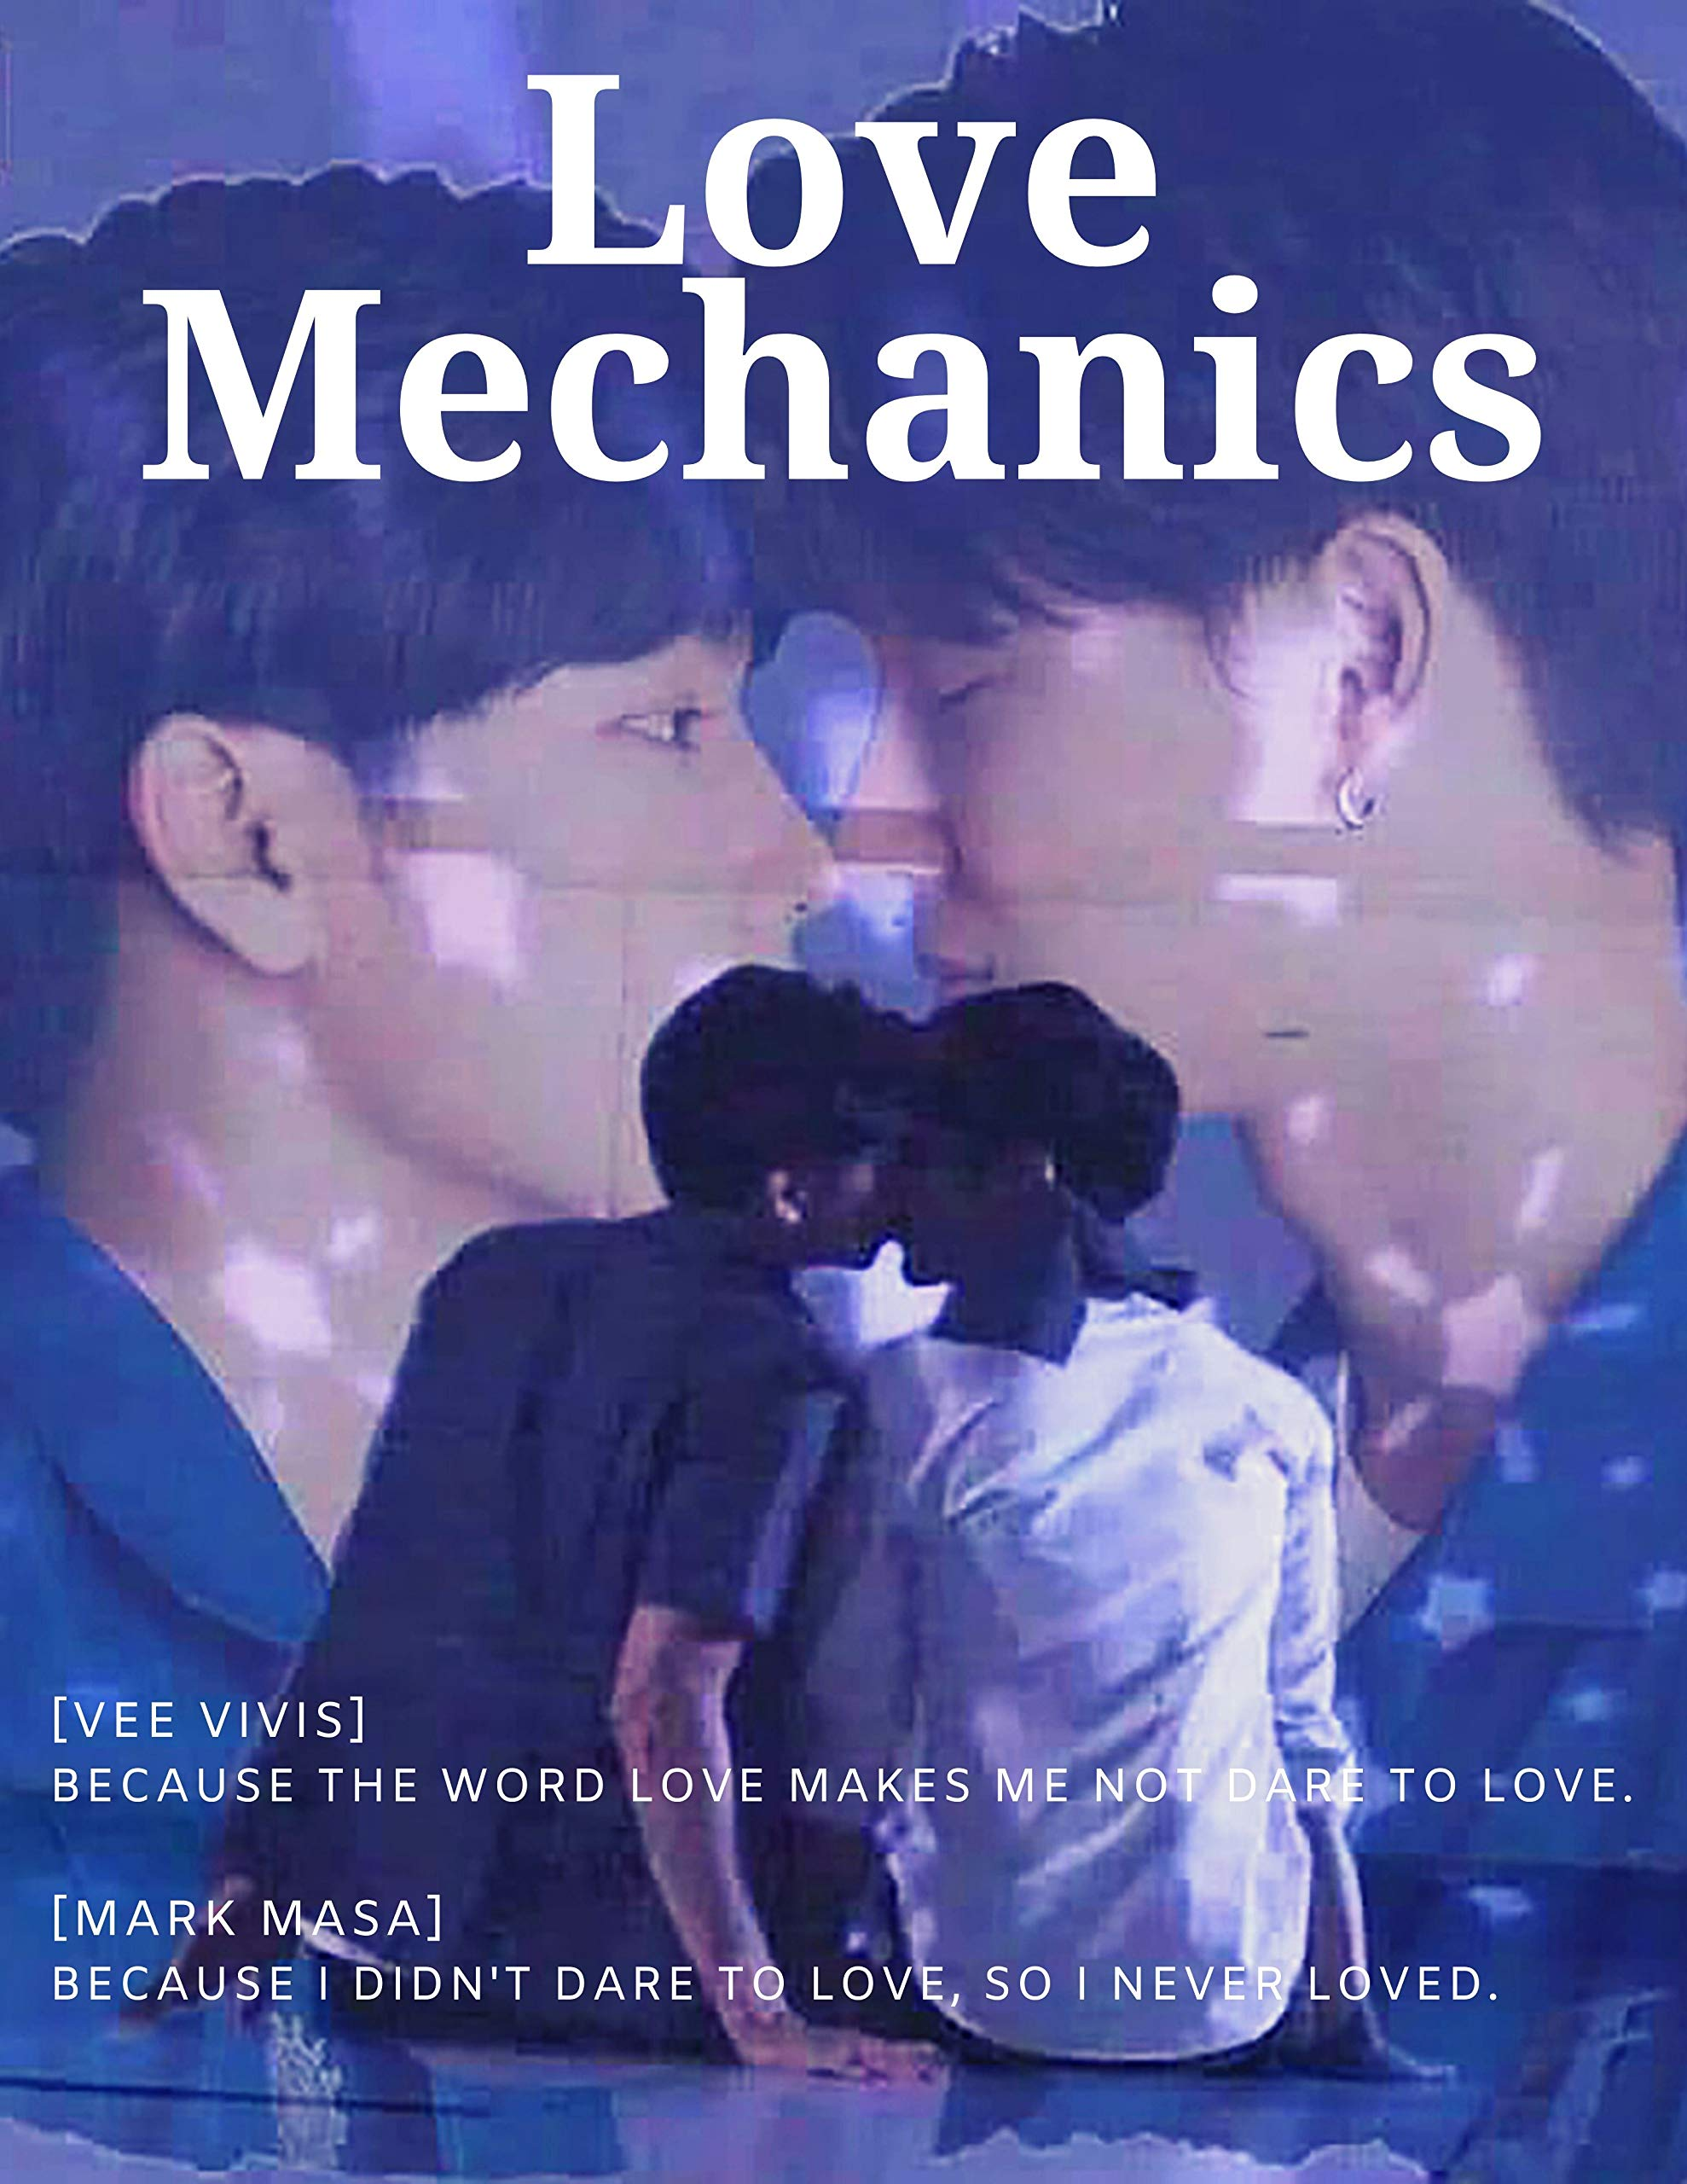 Thai BL Novel Love Mechanics End Of Love, LGBT Story Lover: Love Mechanics ' End Of Love BL LGBT Novel Story Lover for Everyone Easy to read Ebook for ... episodes, 512 pages and picture bonus